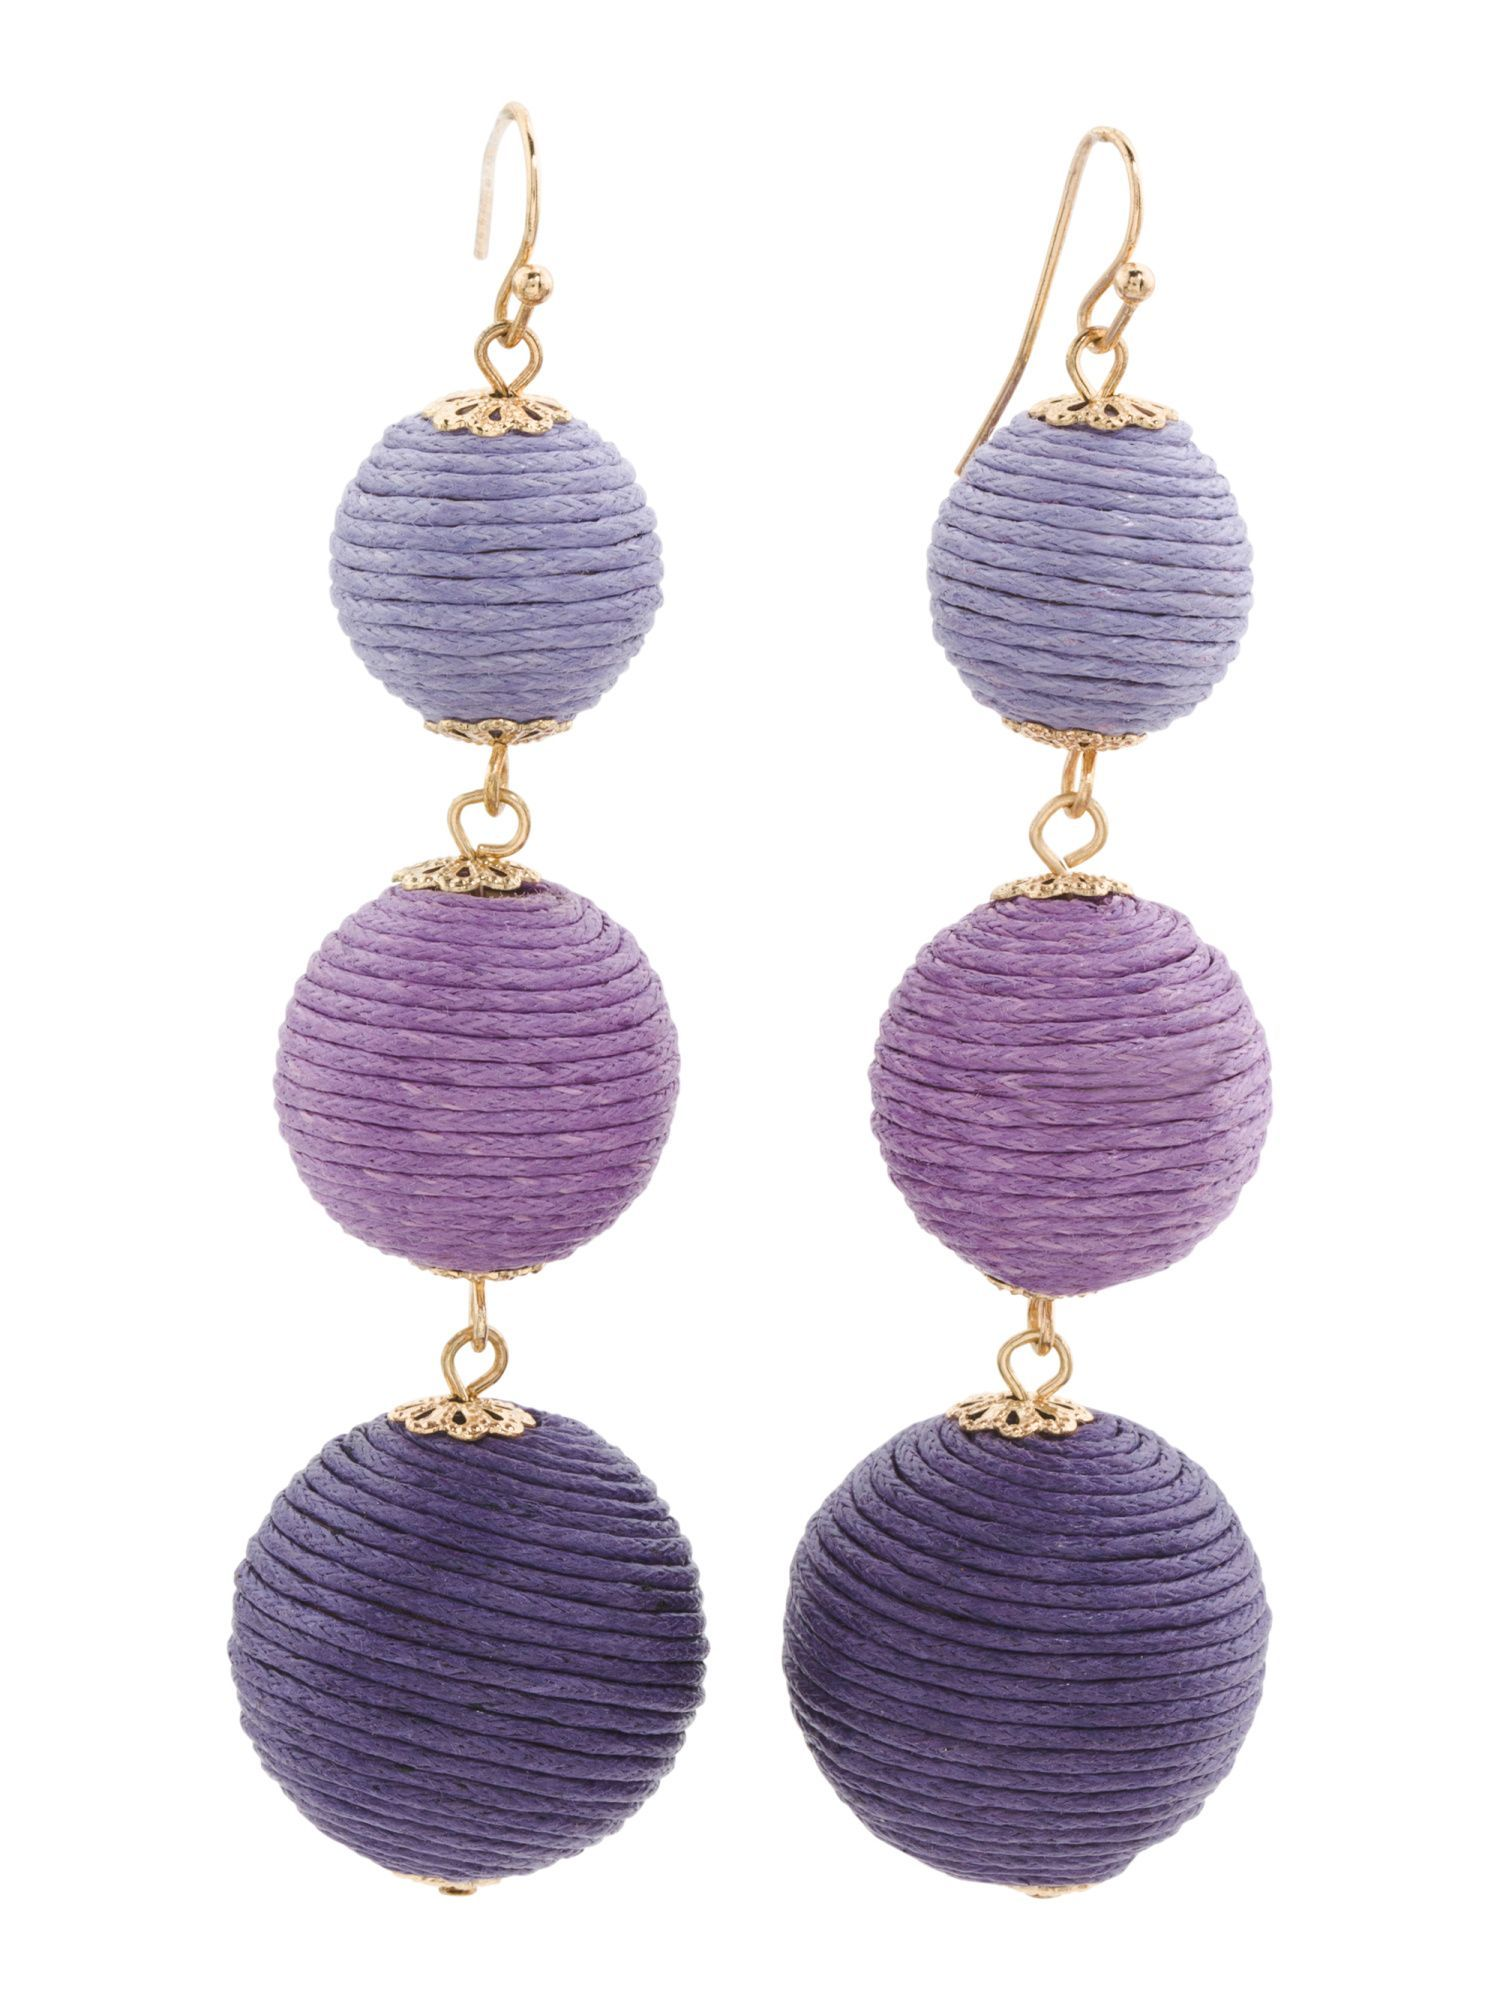 Handmade Thread Wrapped Tier Ombre Ball Earrings Products